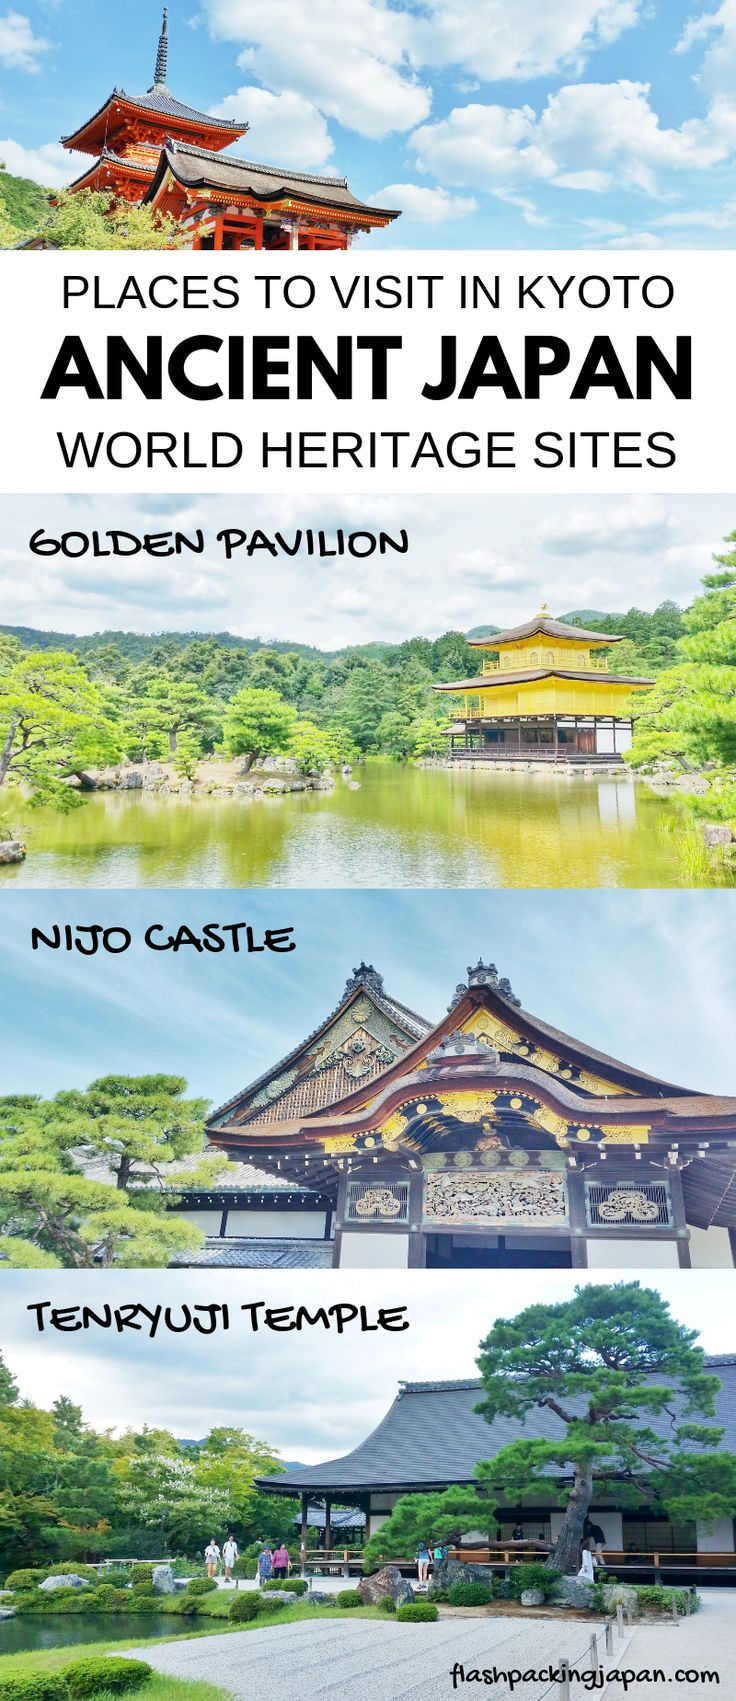 MAP: UNESCO world heritage sites in Kyoto – PHOTOS – Backpacking Japan Travel – Katrina Anne